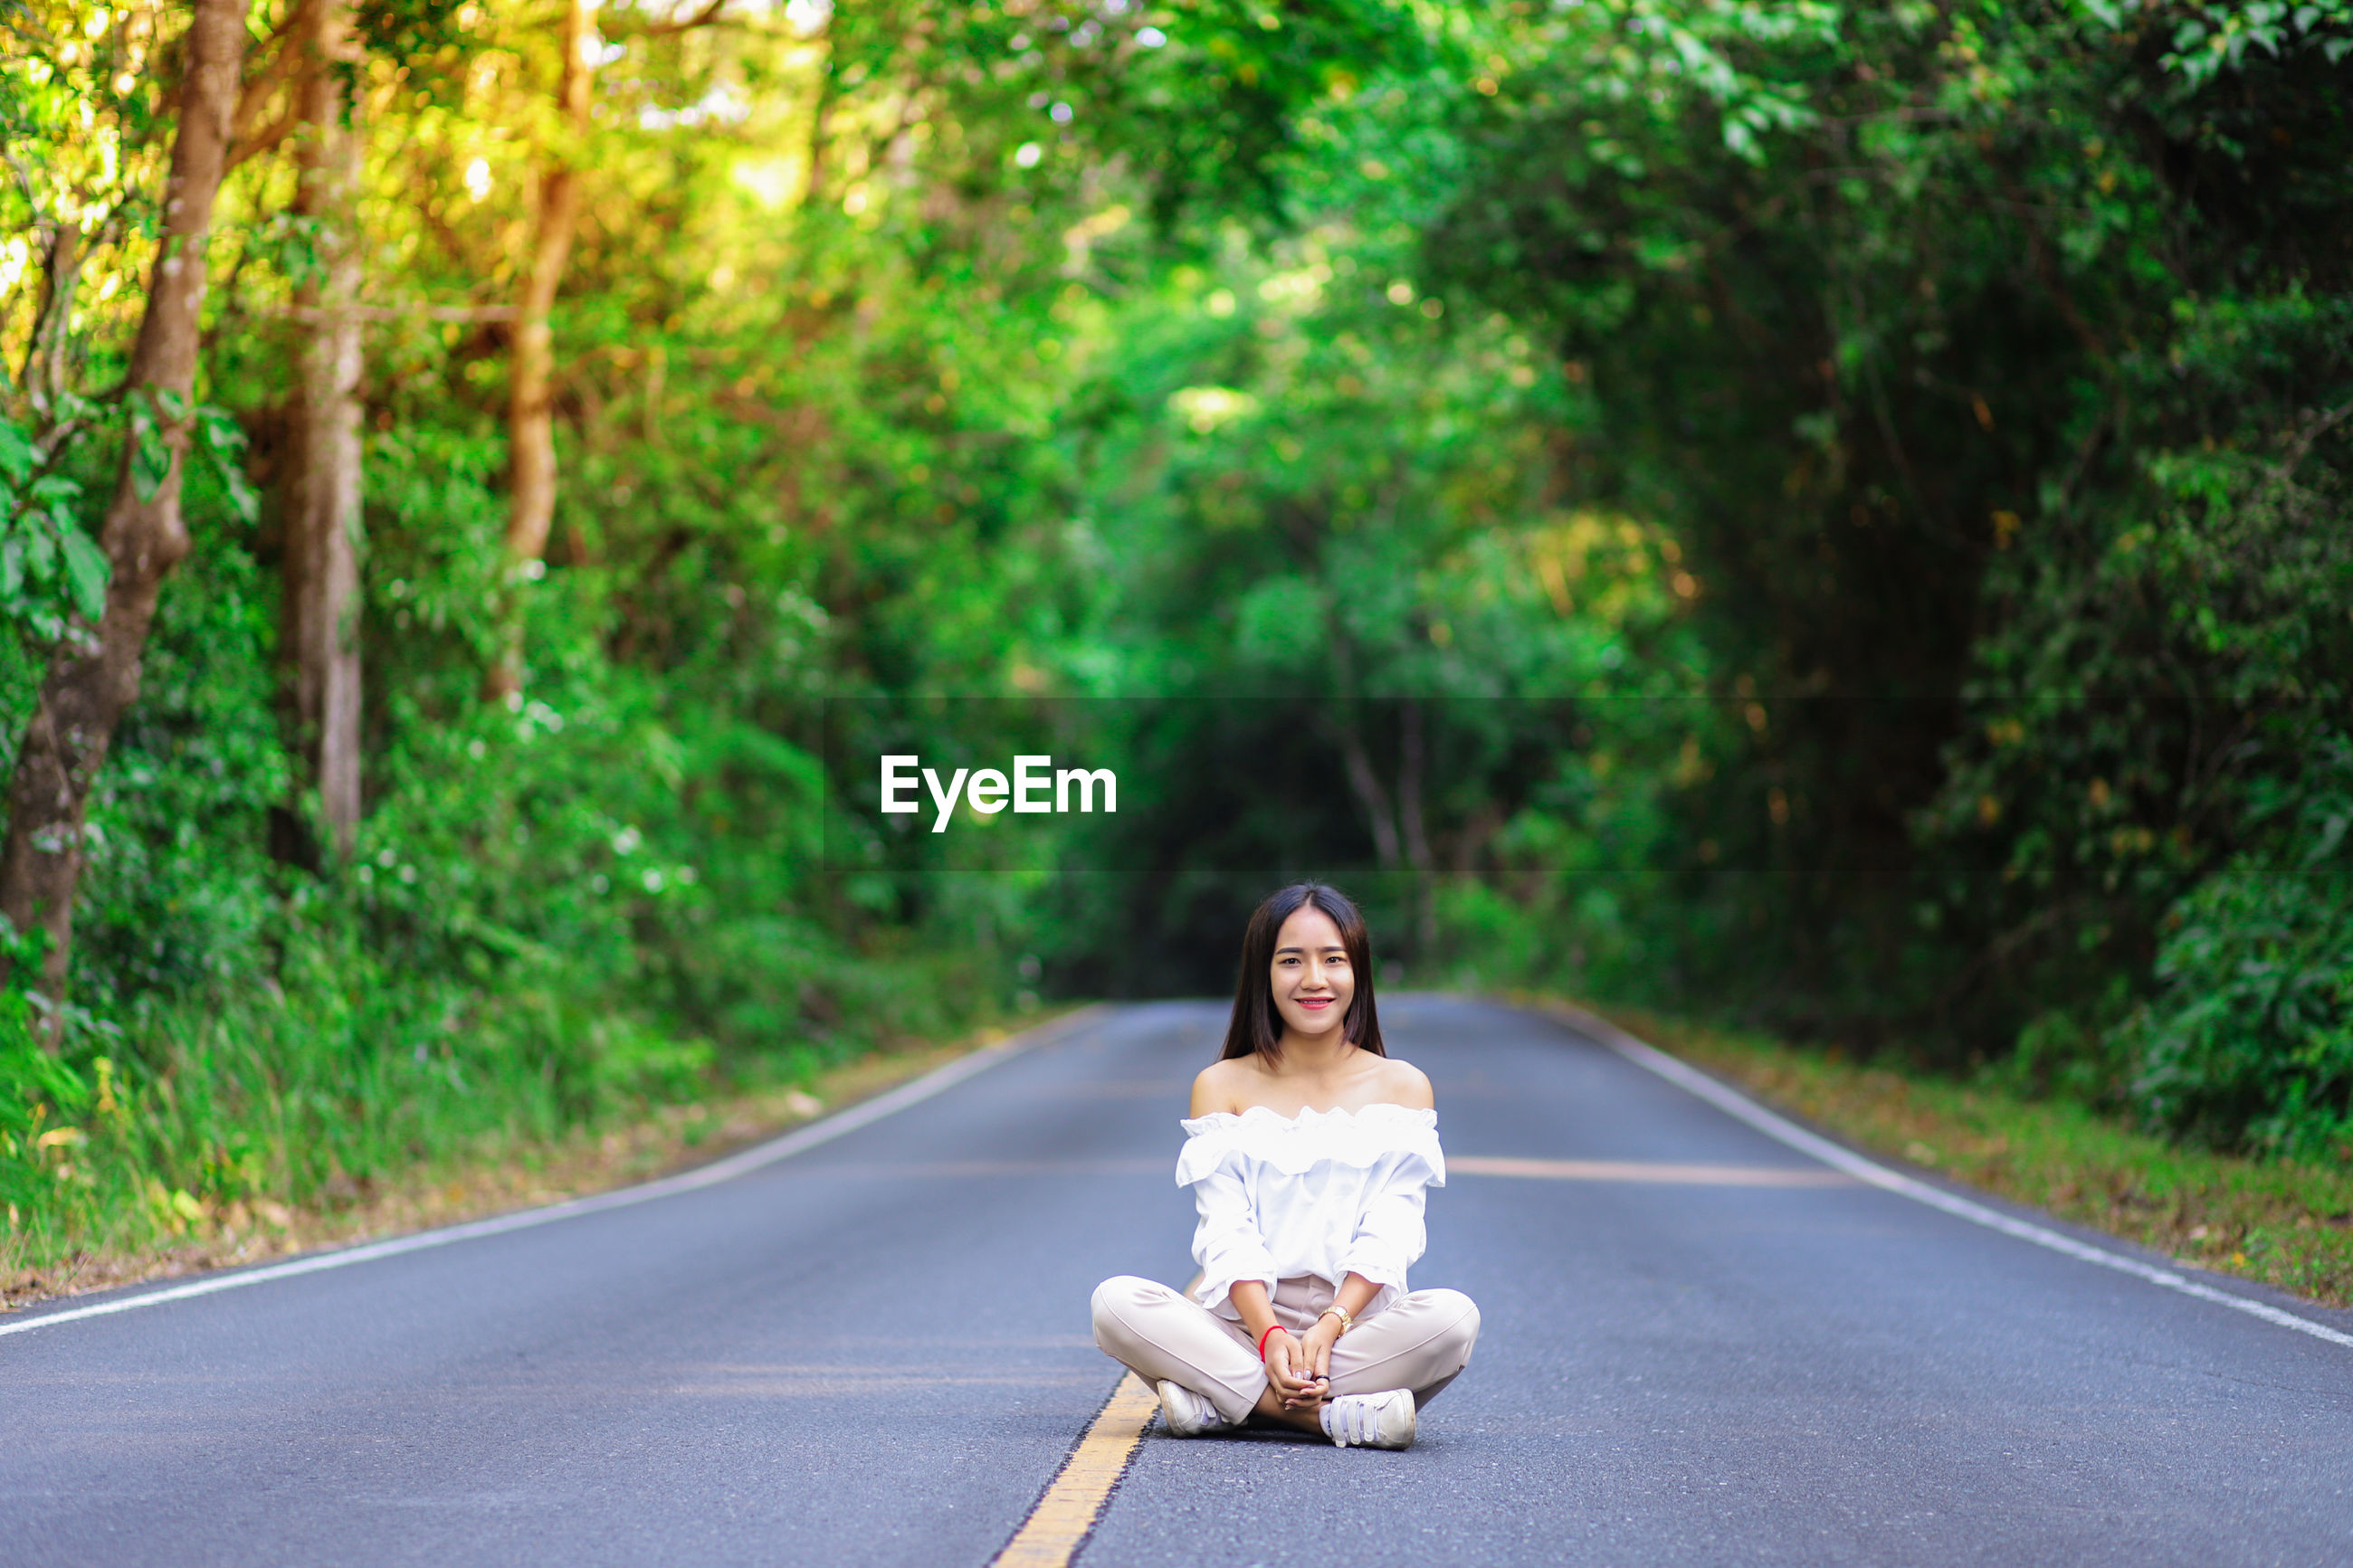 Full length portrait of smiling young woman sitting on country road in forest